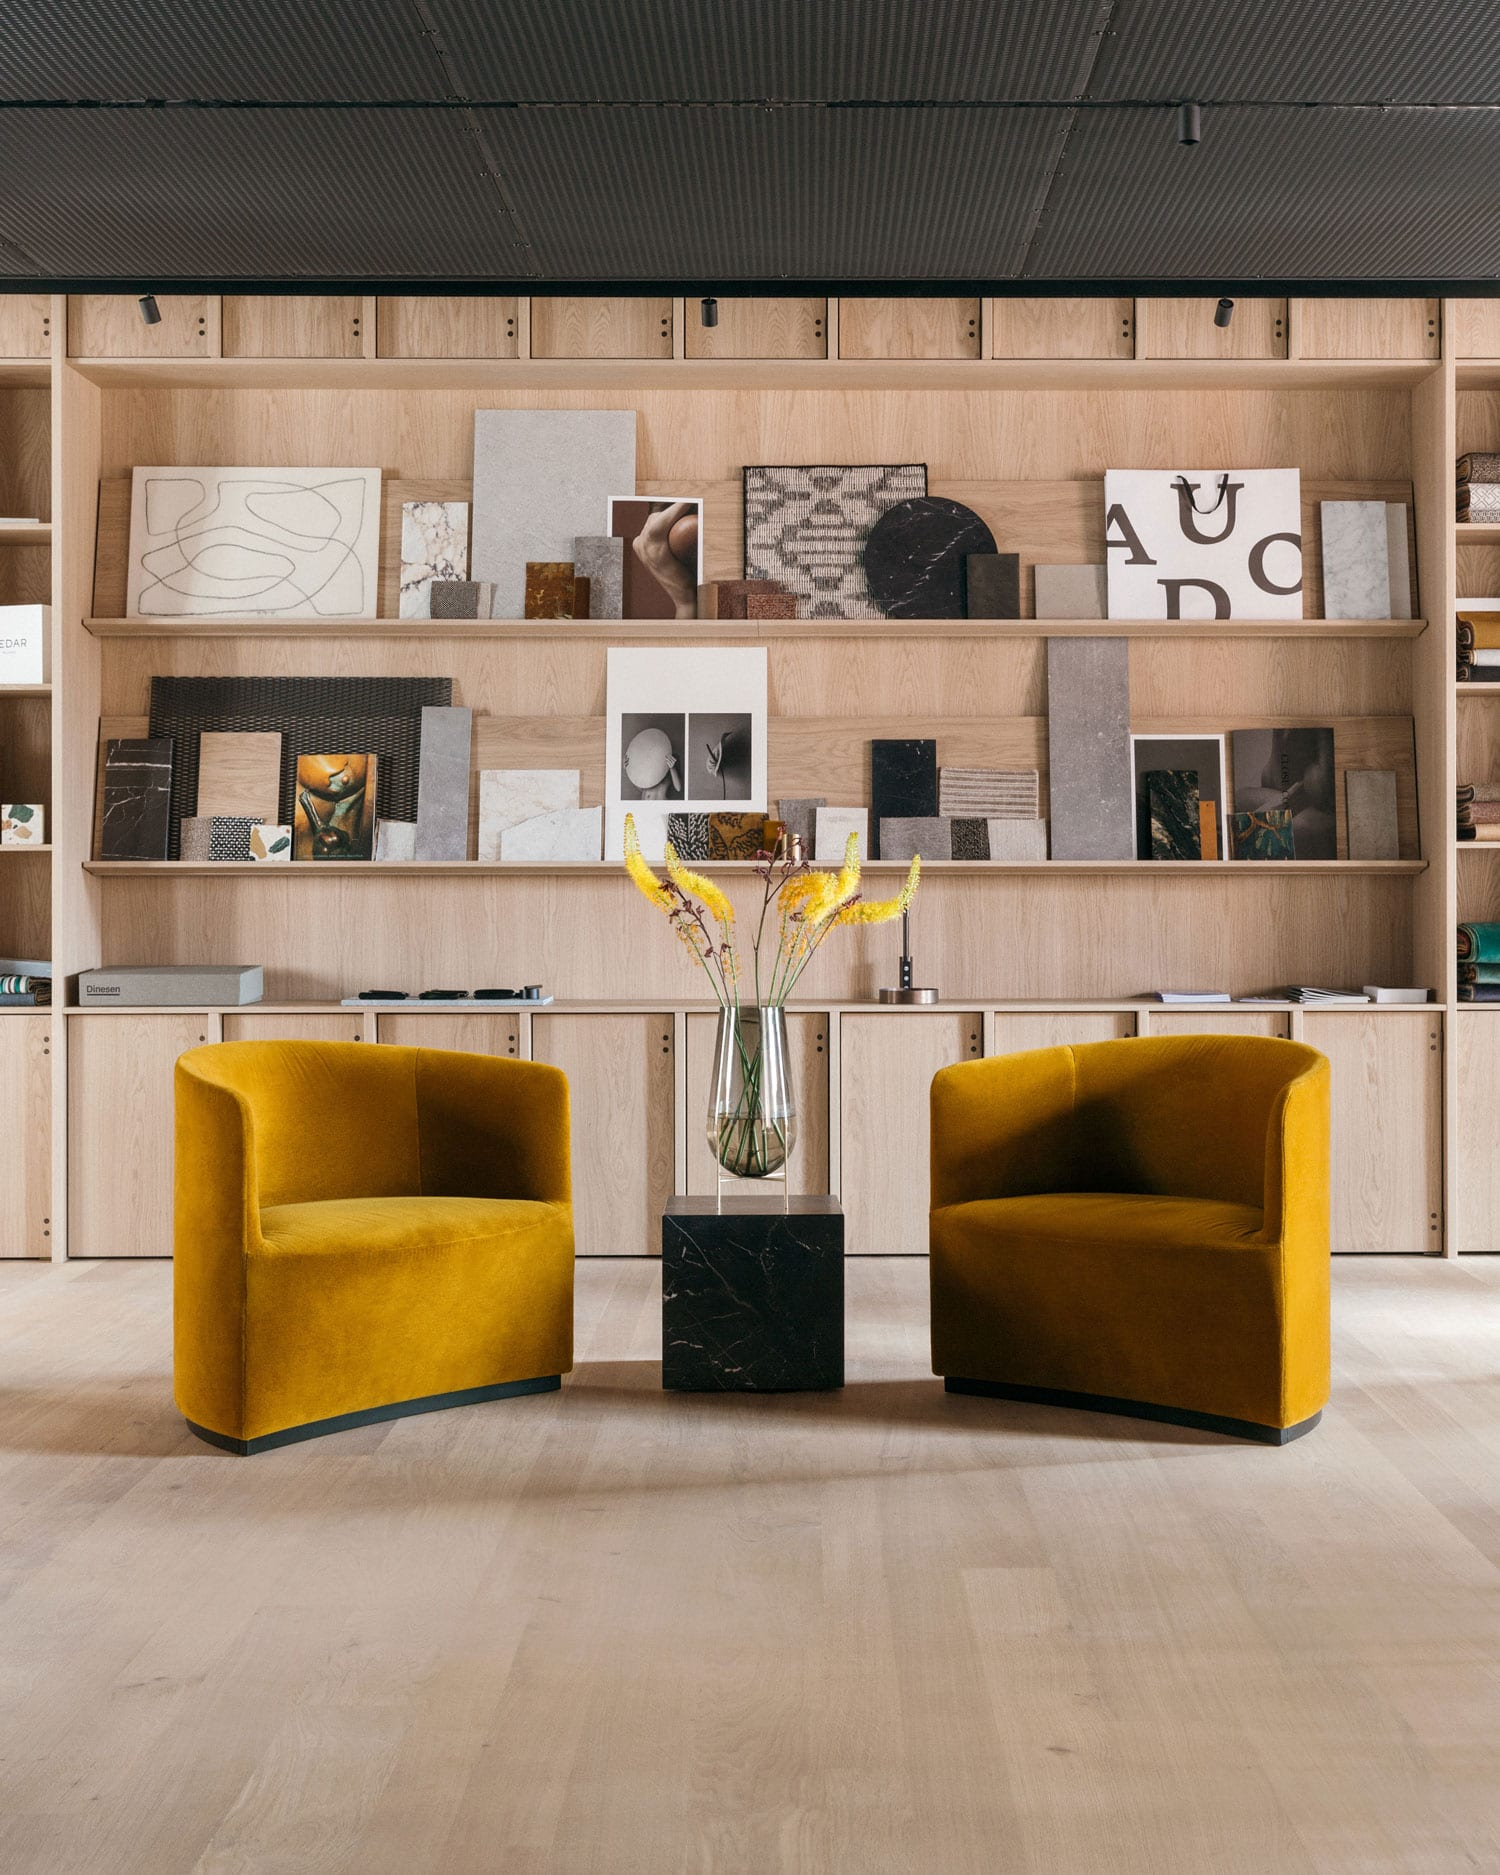 The Audo Hybrid Space Copenhagen By Norm Architects | Yellowtrace